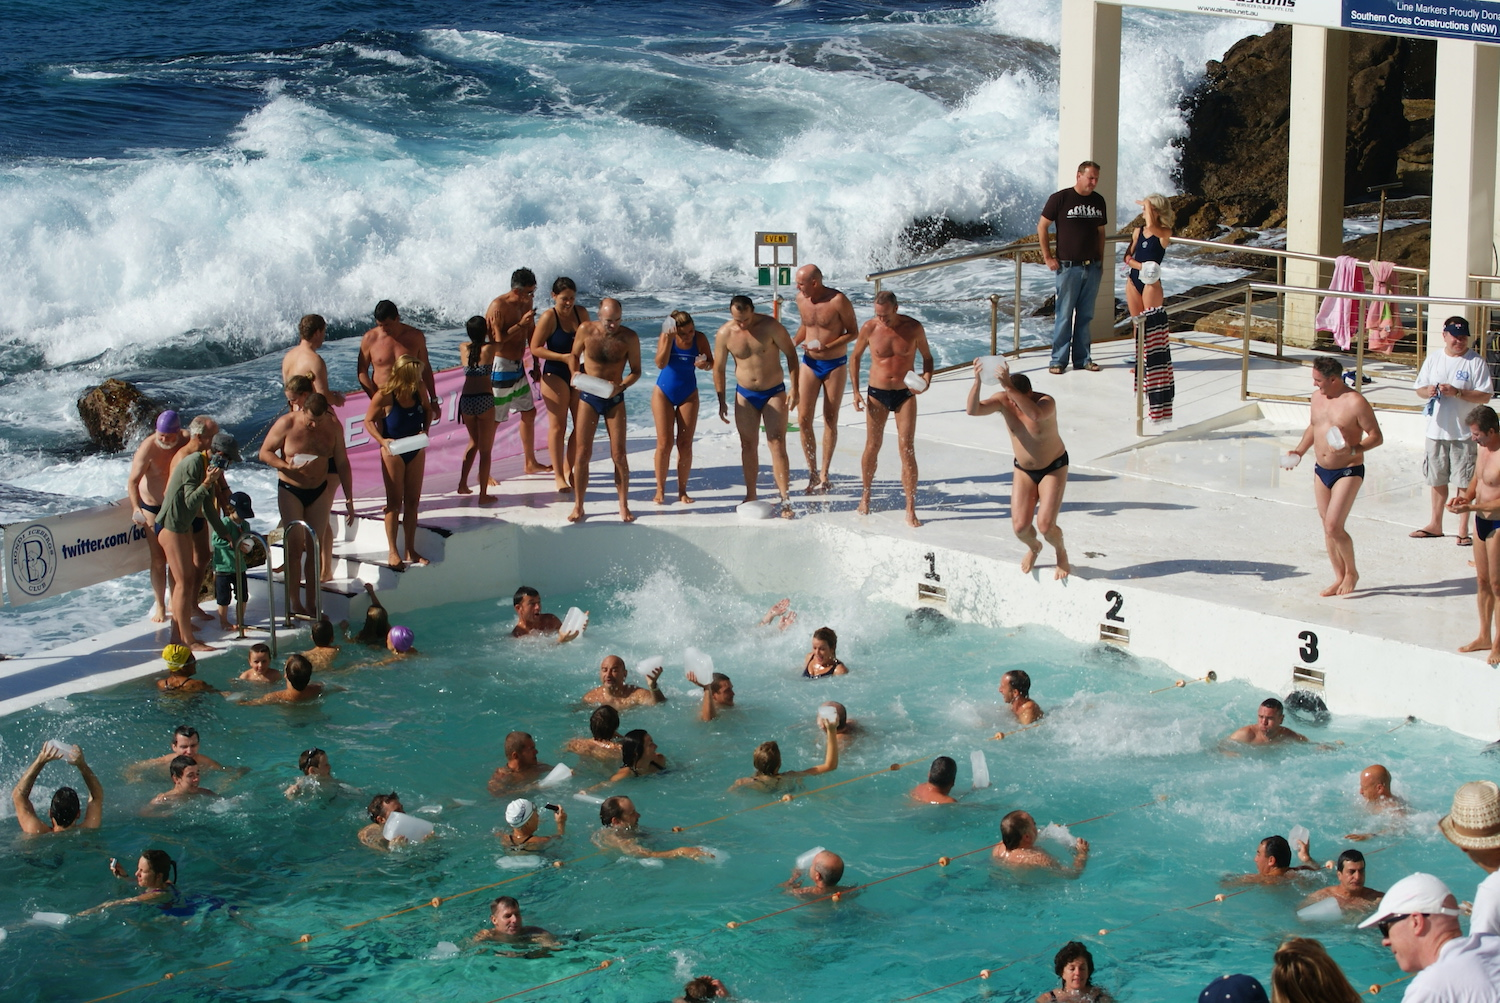 Bondi Icebergs Winter Swimming season launch